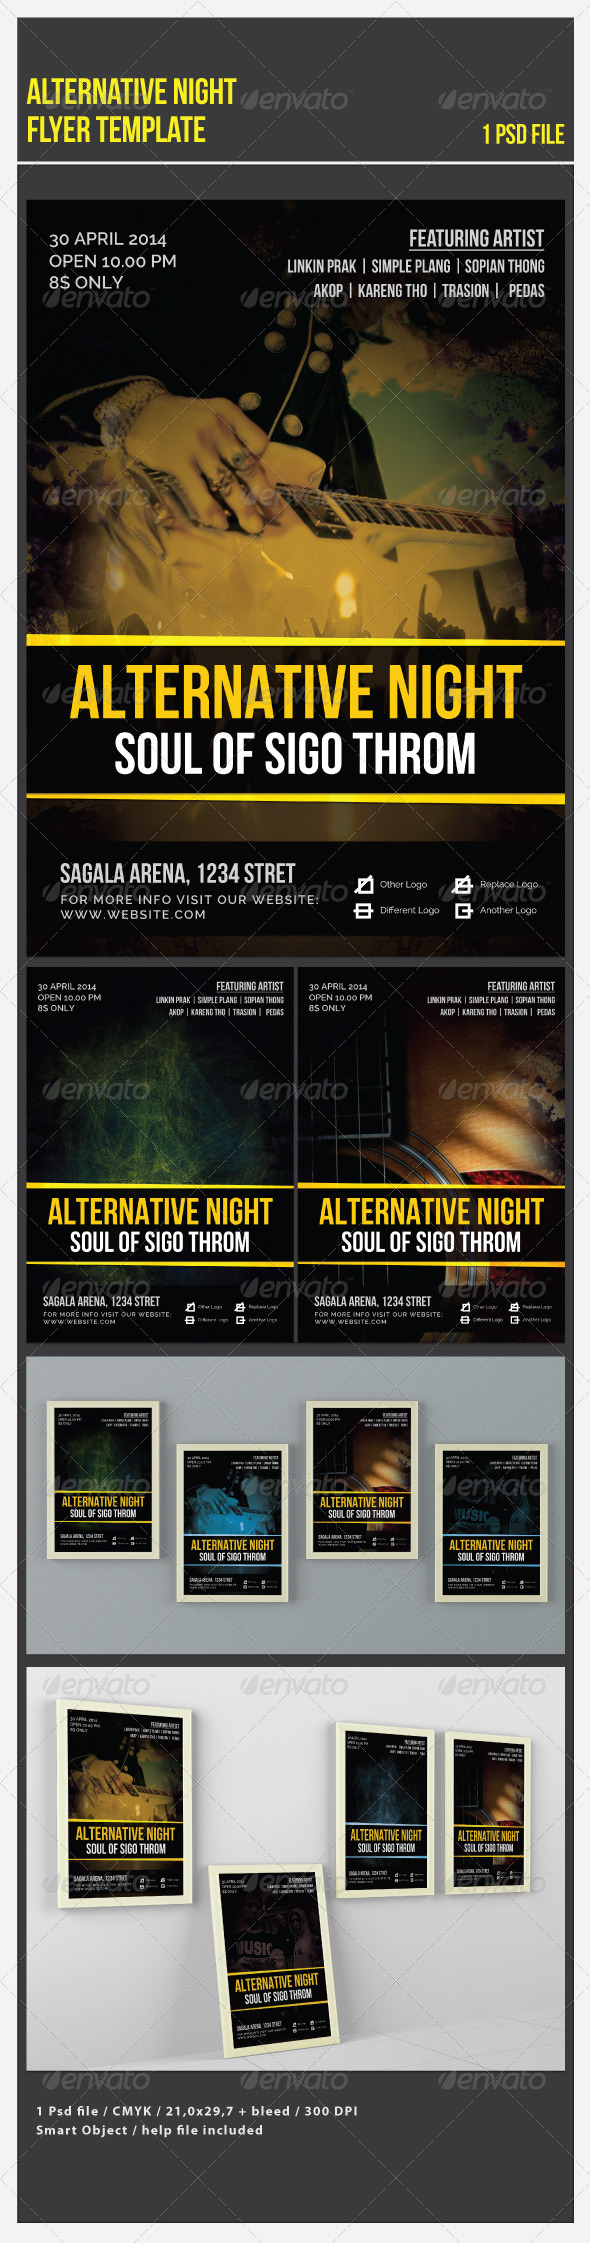 Alternative Night Flyer Template - Flyers Print Templates